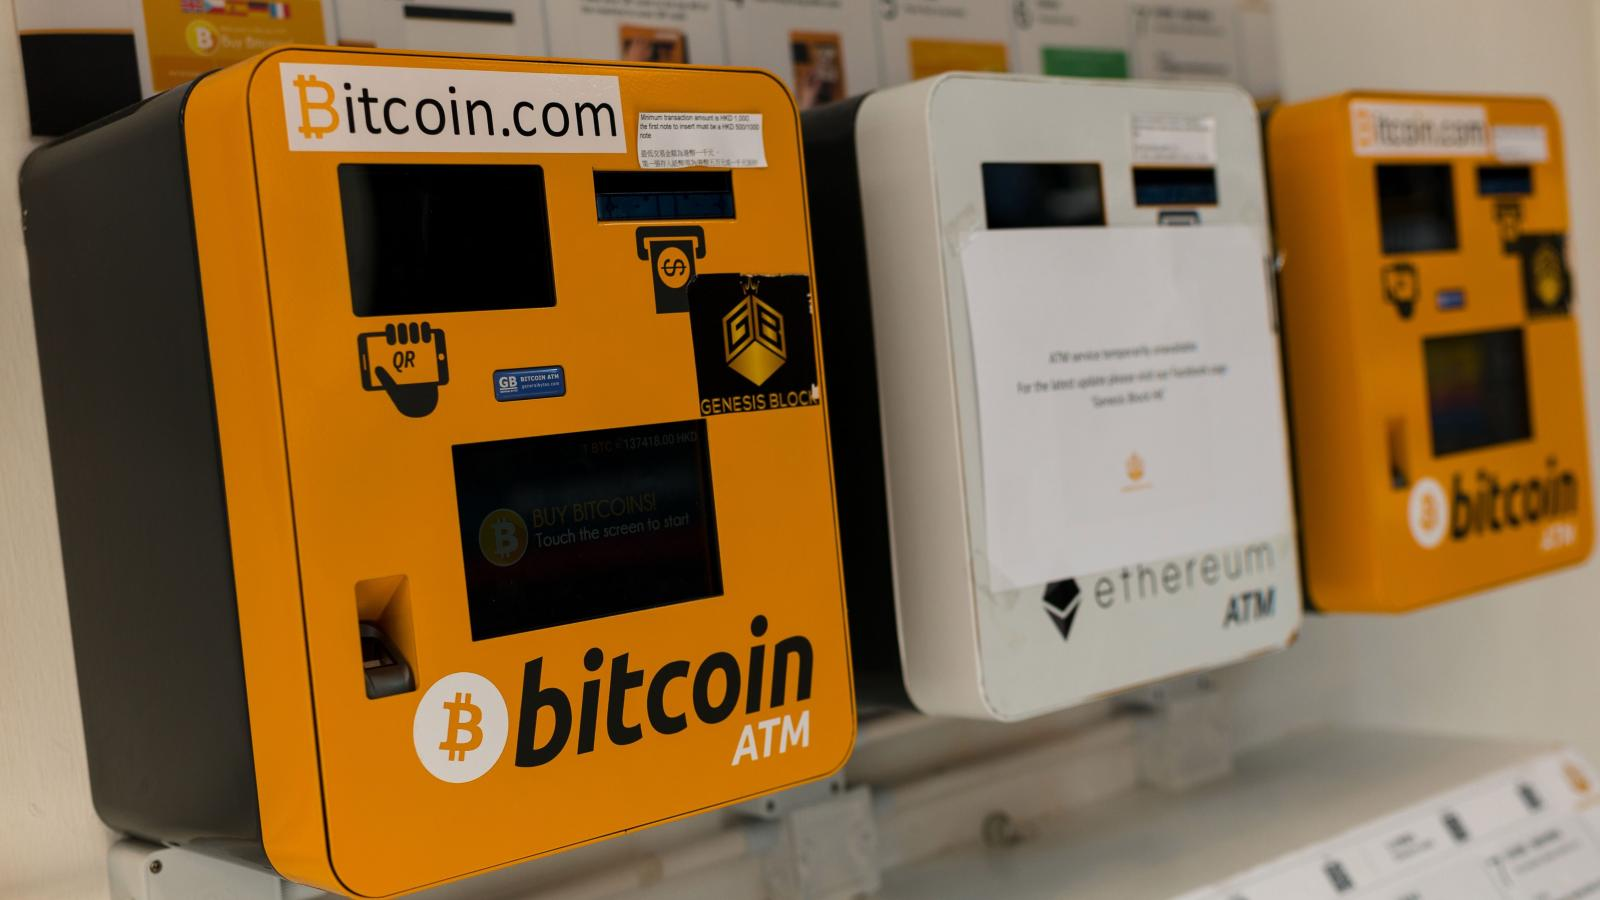 How to Use a Bitcoin ATM? Everything You Need to Know About Bitcoin ATM